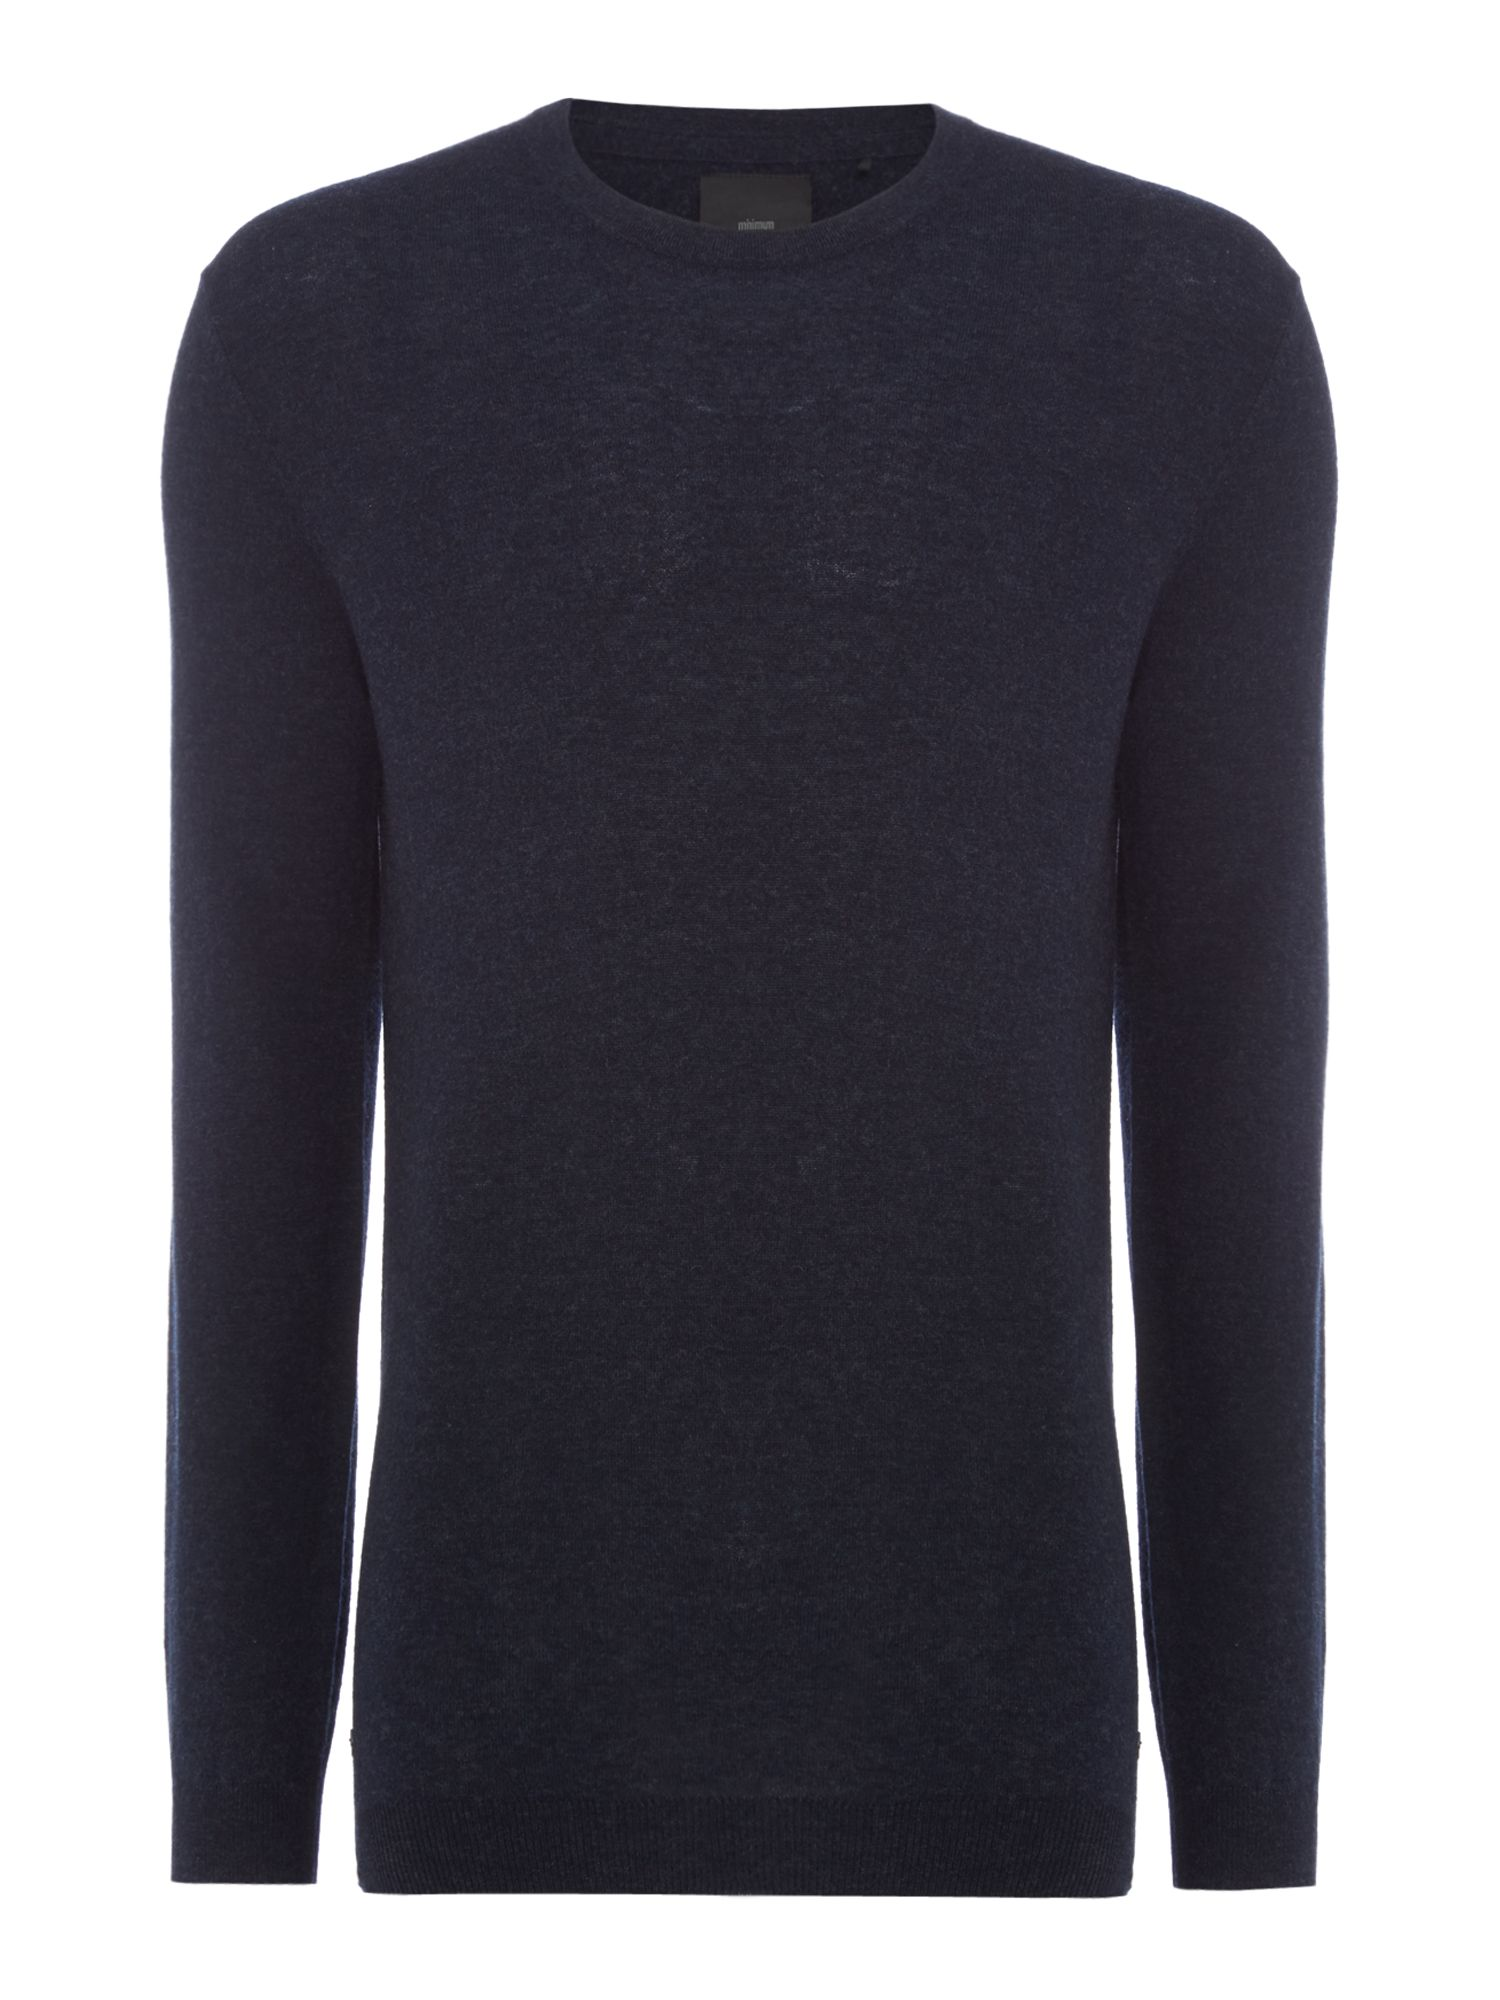 Men's Minimum Knitted Long Sleeved Pullover, Dark Blue